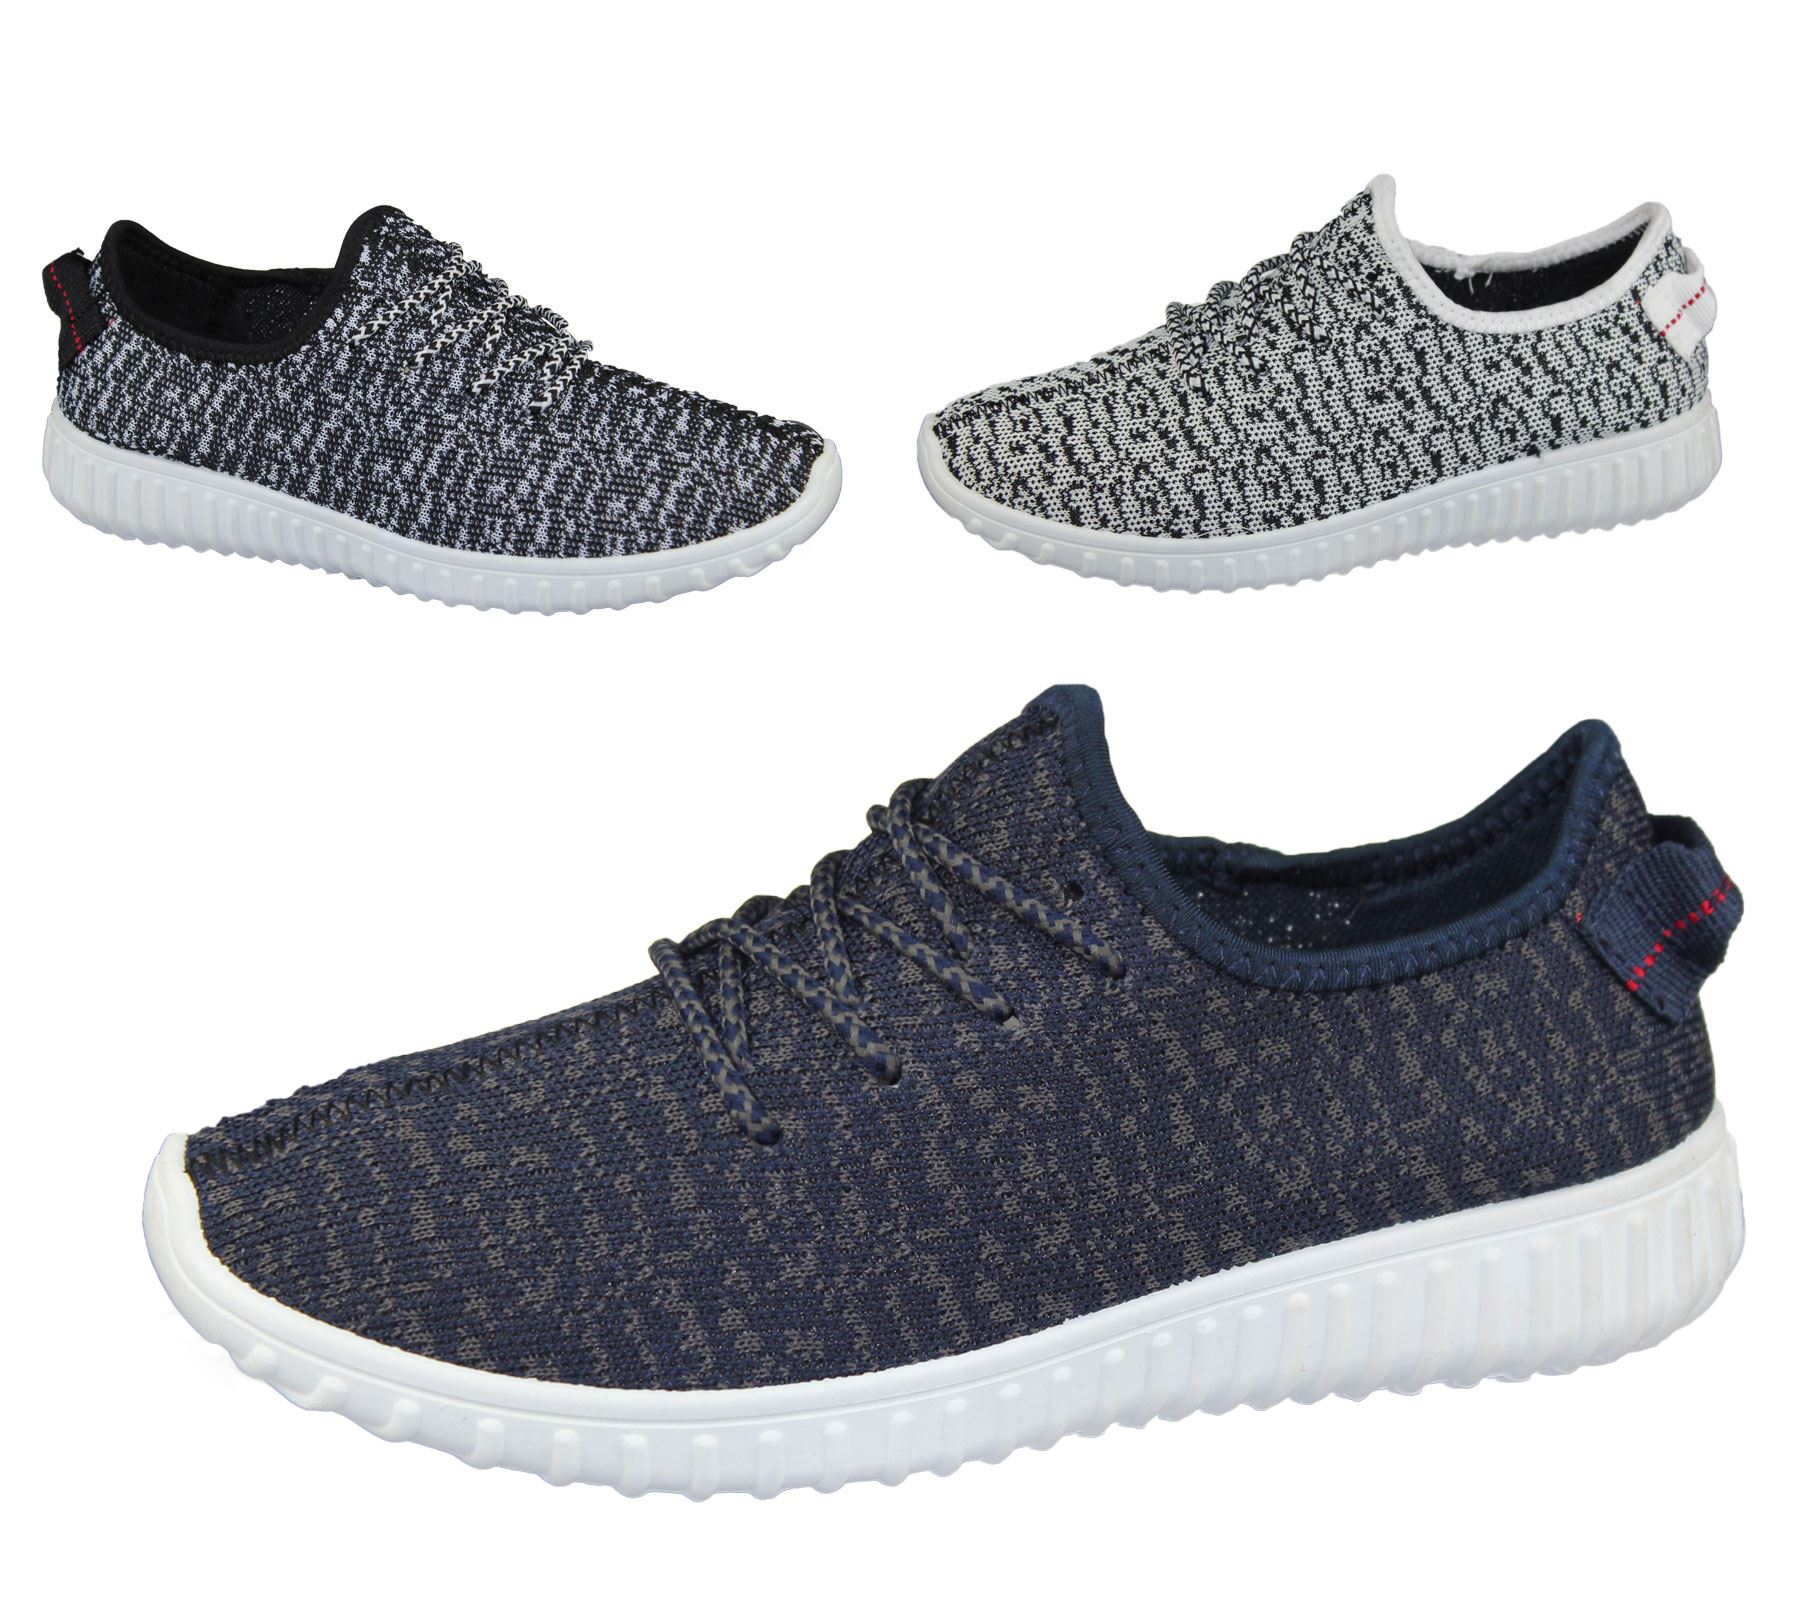 Mens Lace Up Yeezy Trainer Comfort Sports Casual Fashion Inspired Walking Shoes